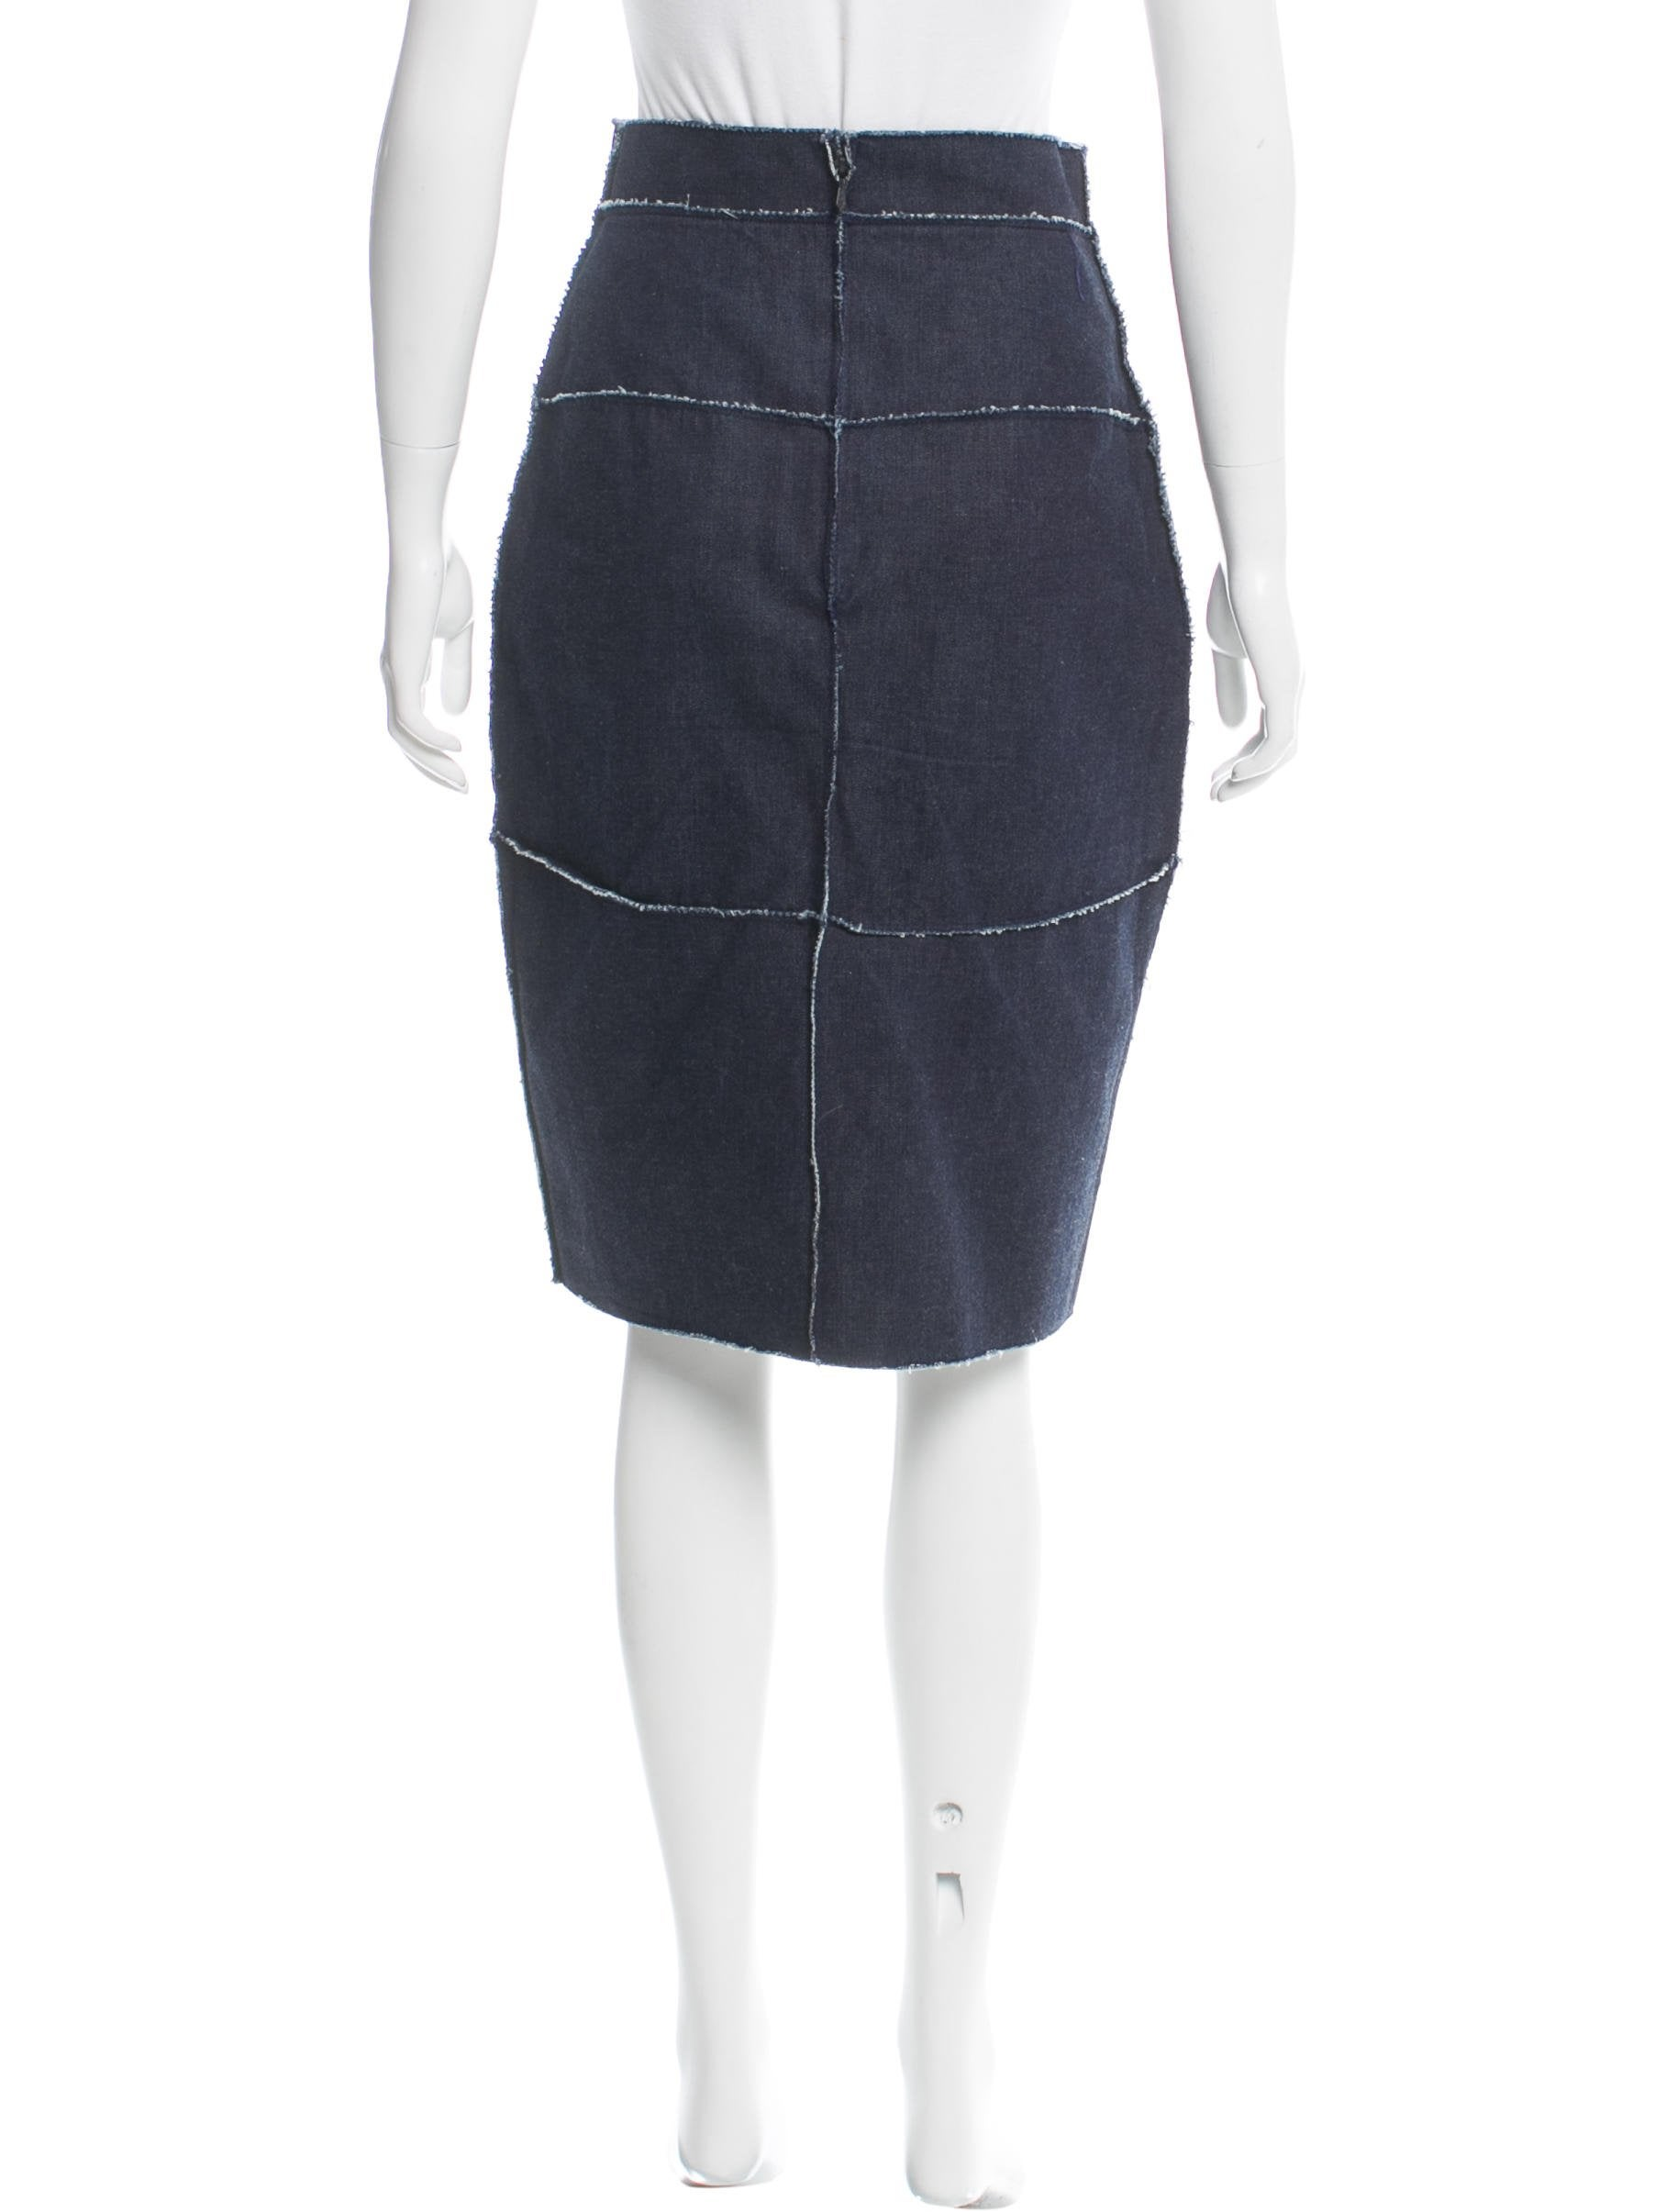 Clothing Denim Skirt 69